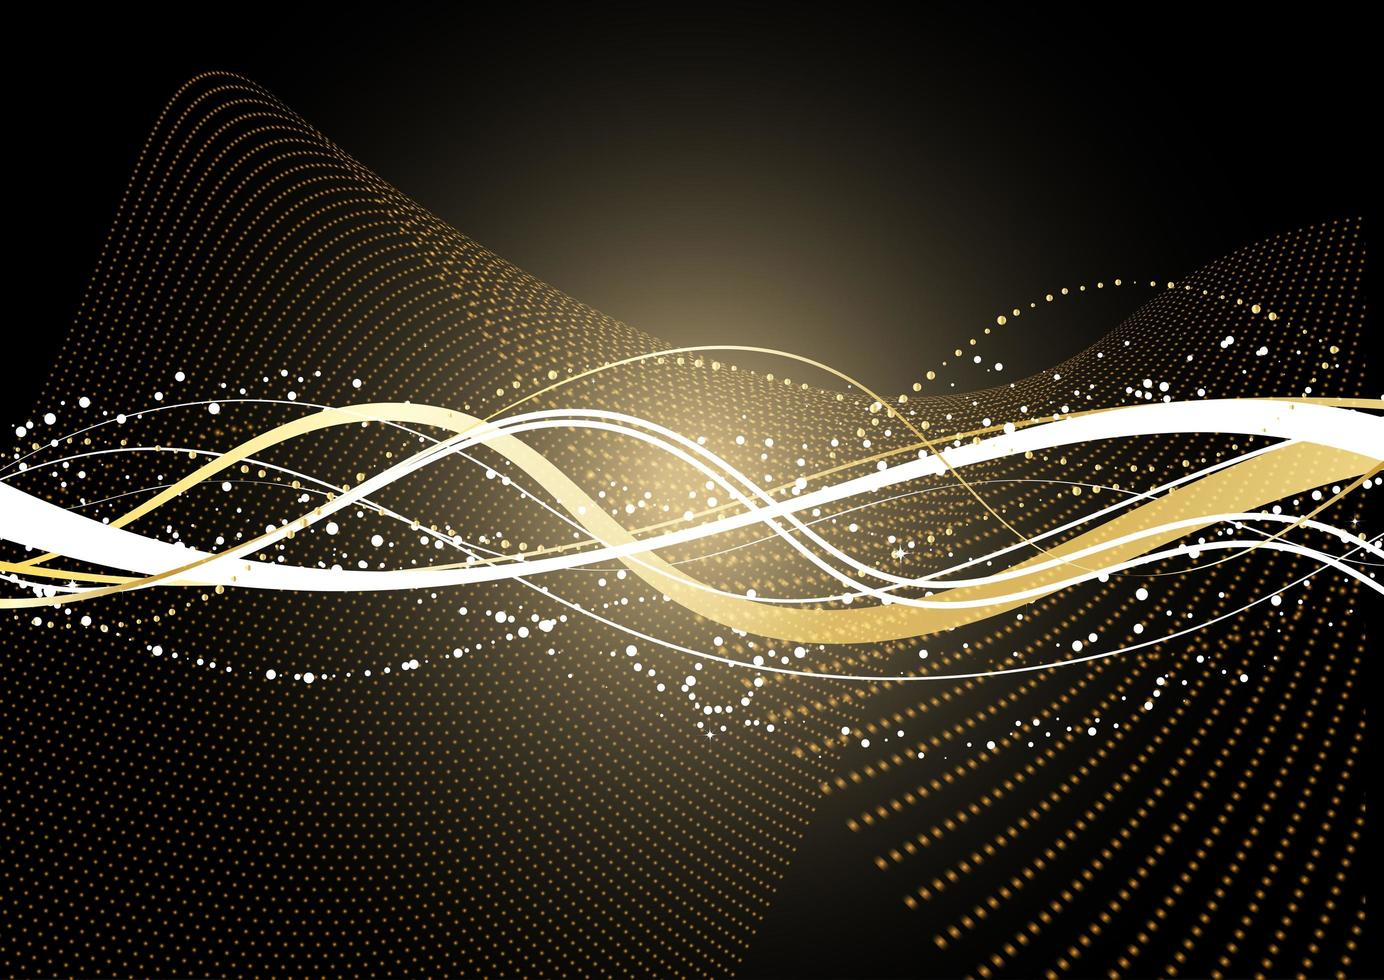 Decorative Background with Flowing Golden Dots and Lines vector